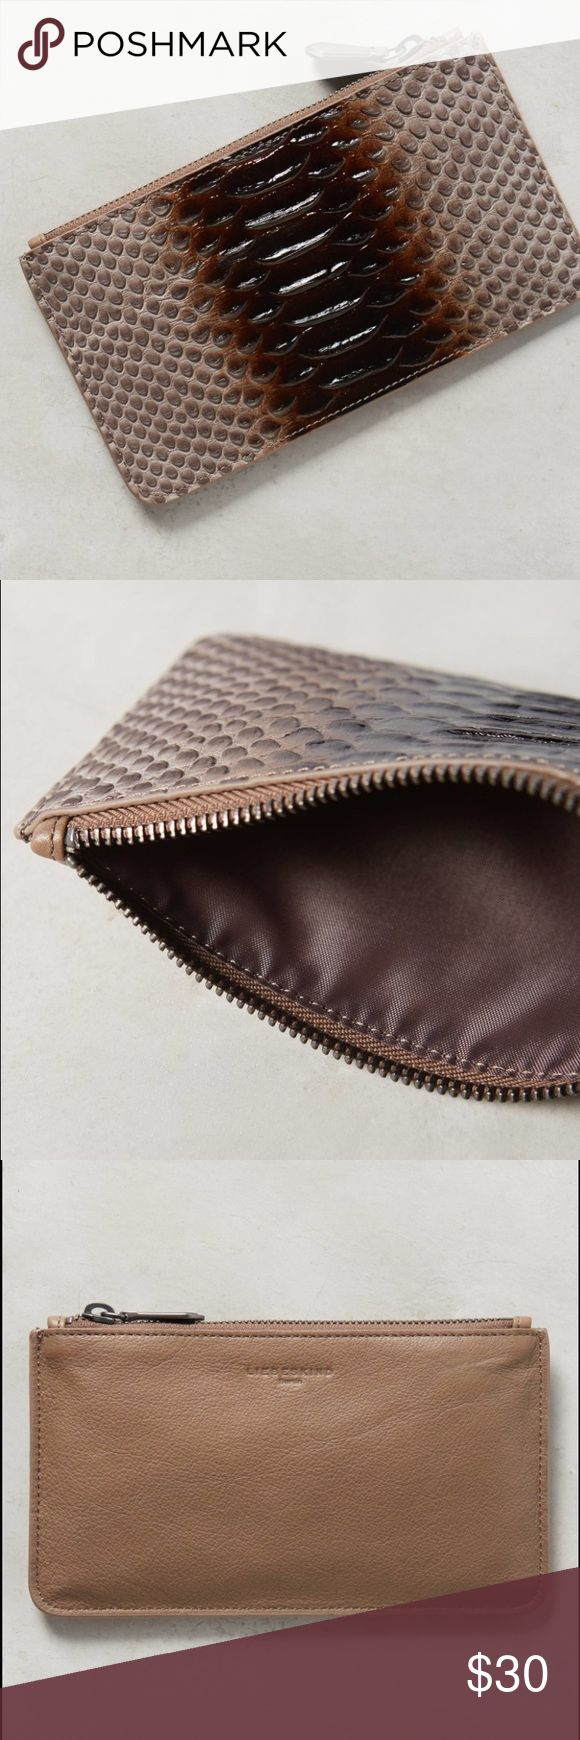 Sale!! Snakeskin Liebeskind Pouch Very stylish sophisticated snakeskin rabia brown pouch wallet. Excellent condition!! Gets many compliments!!! Liebeskind Bags Wallets